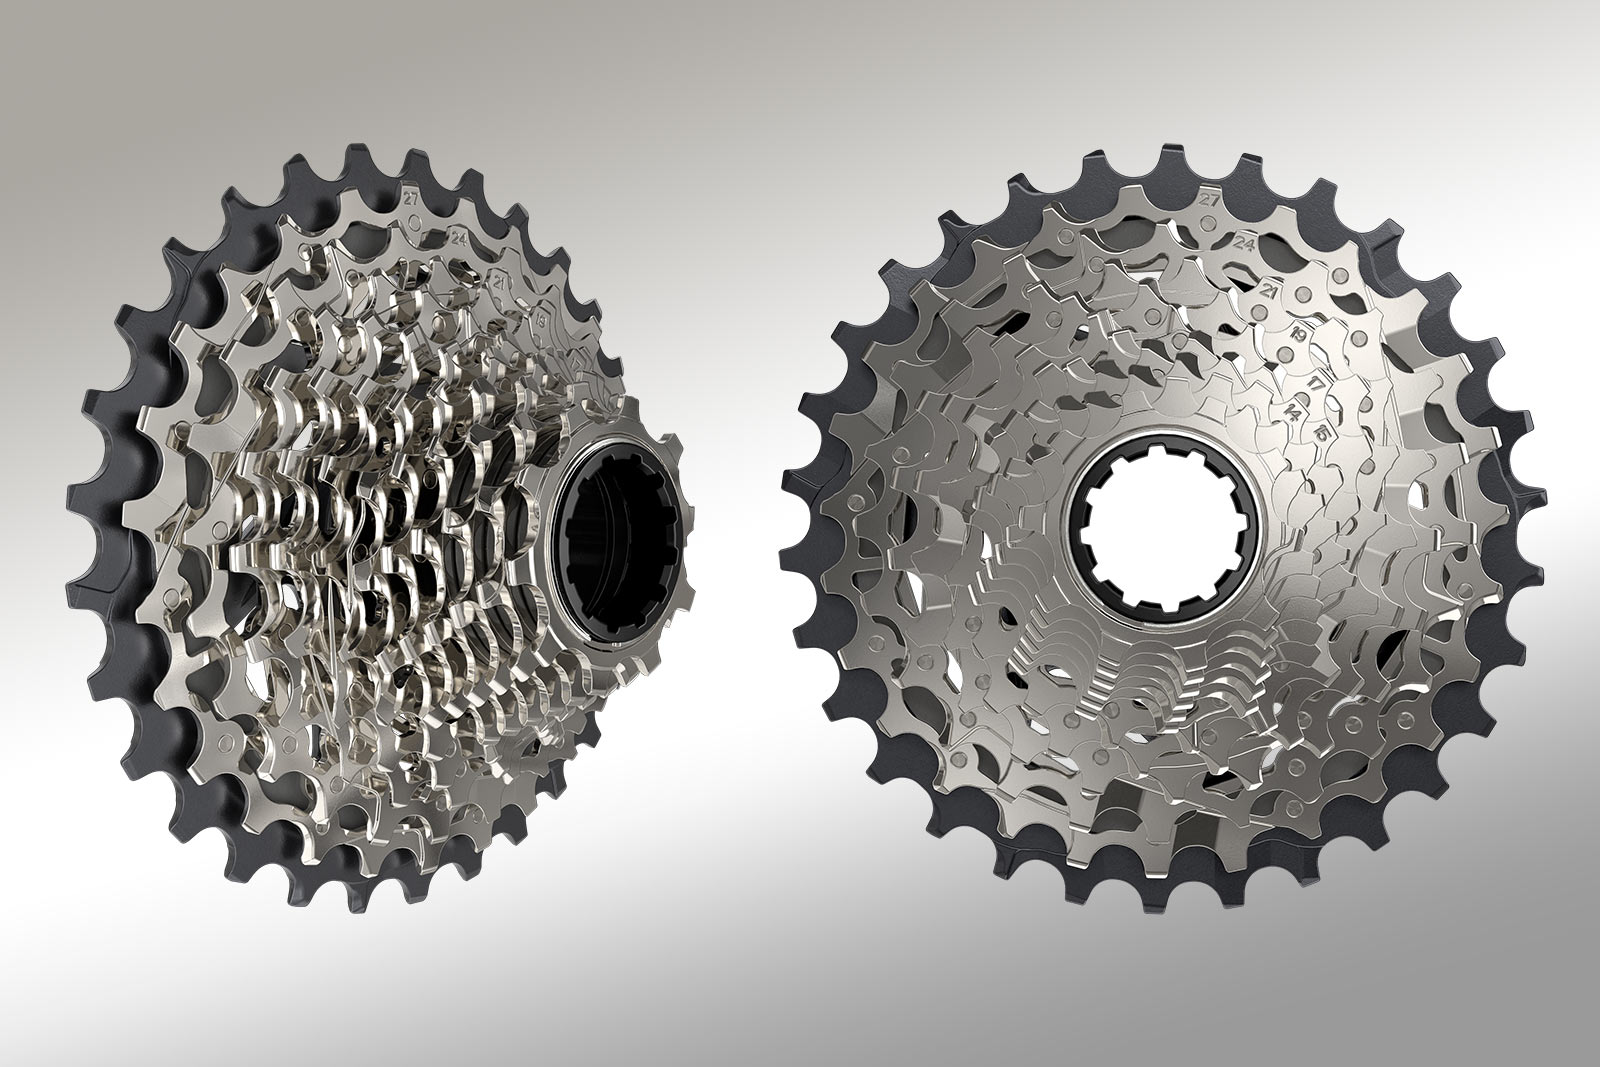 new 10-30 sram force XG-1270 12-speed cassette shown from the front and side angles